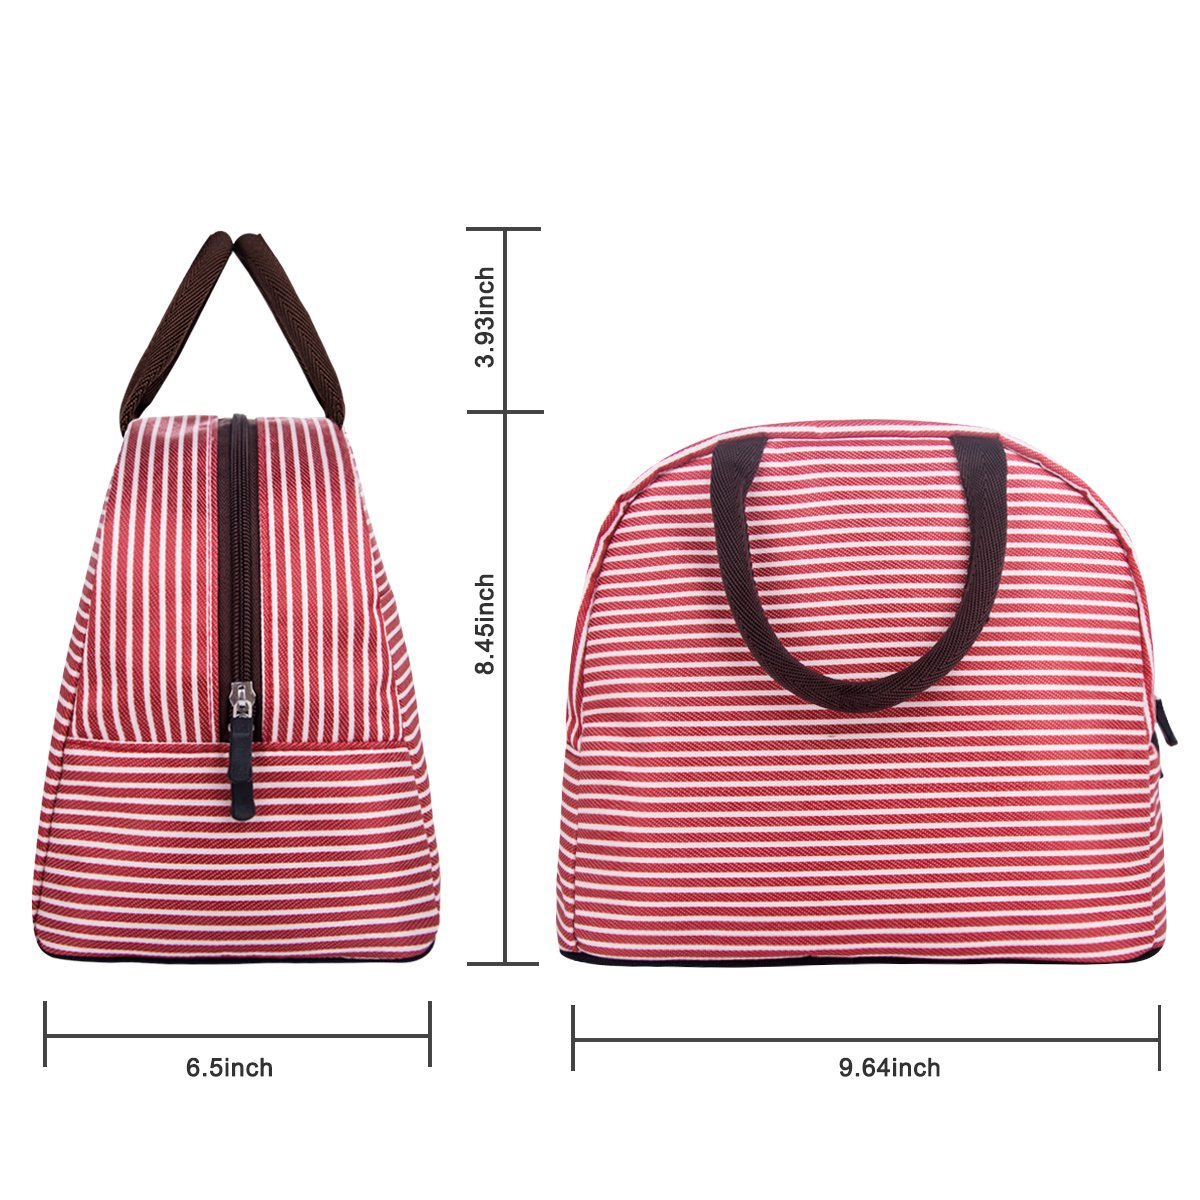 cd94b5581e5e BALORAY Lunch Bag Tote Bag Lunch Organizer Lunch Holder Lunch ...